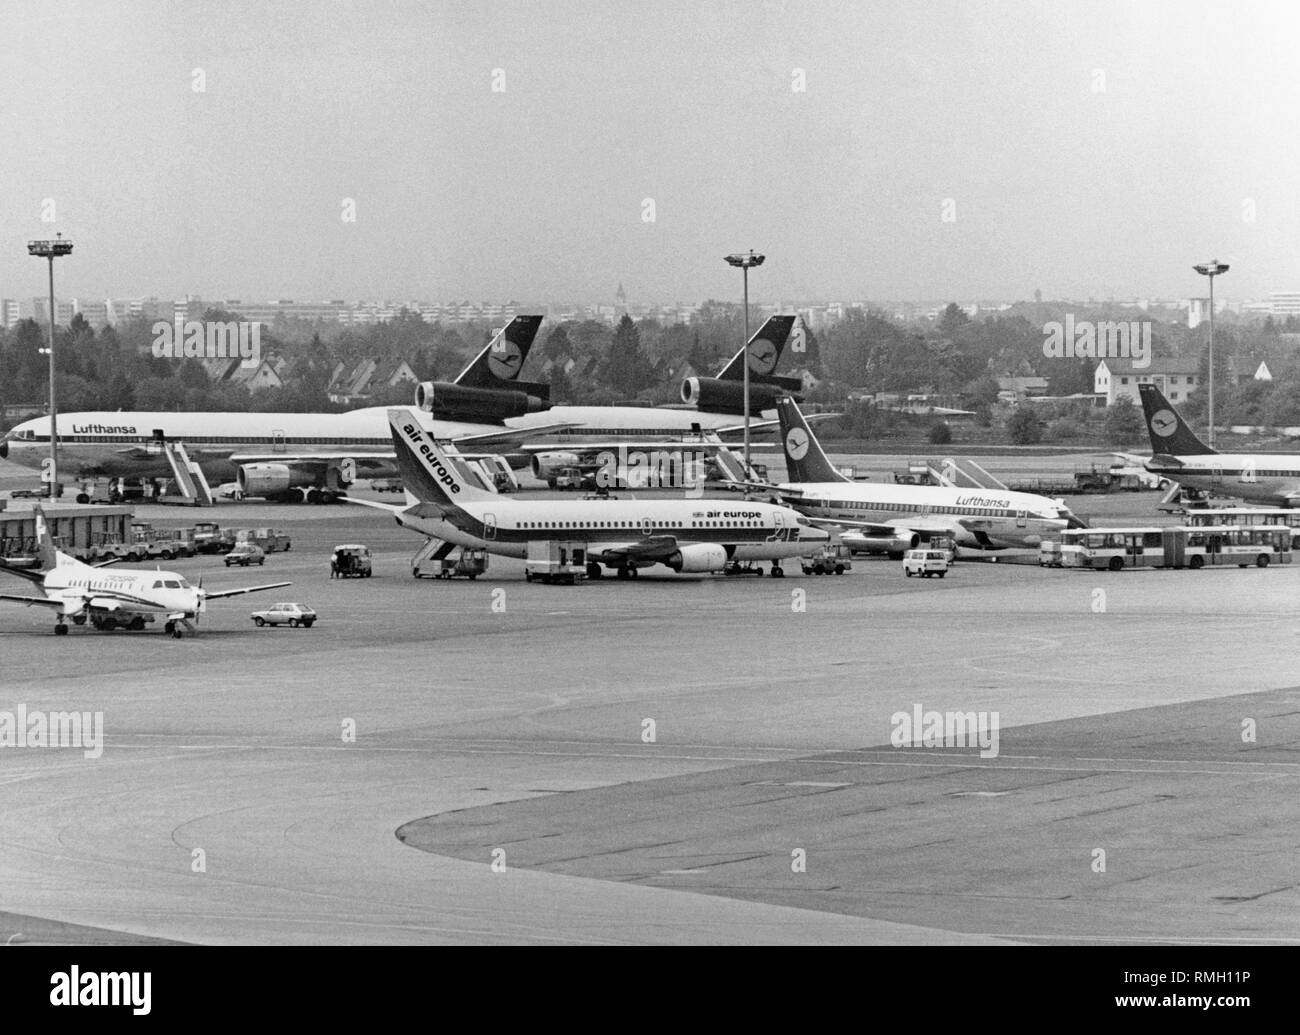 View of waiting aircrafts on the apron of the Munich Airport in Riem. - Stock Image